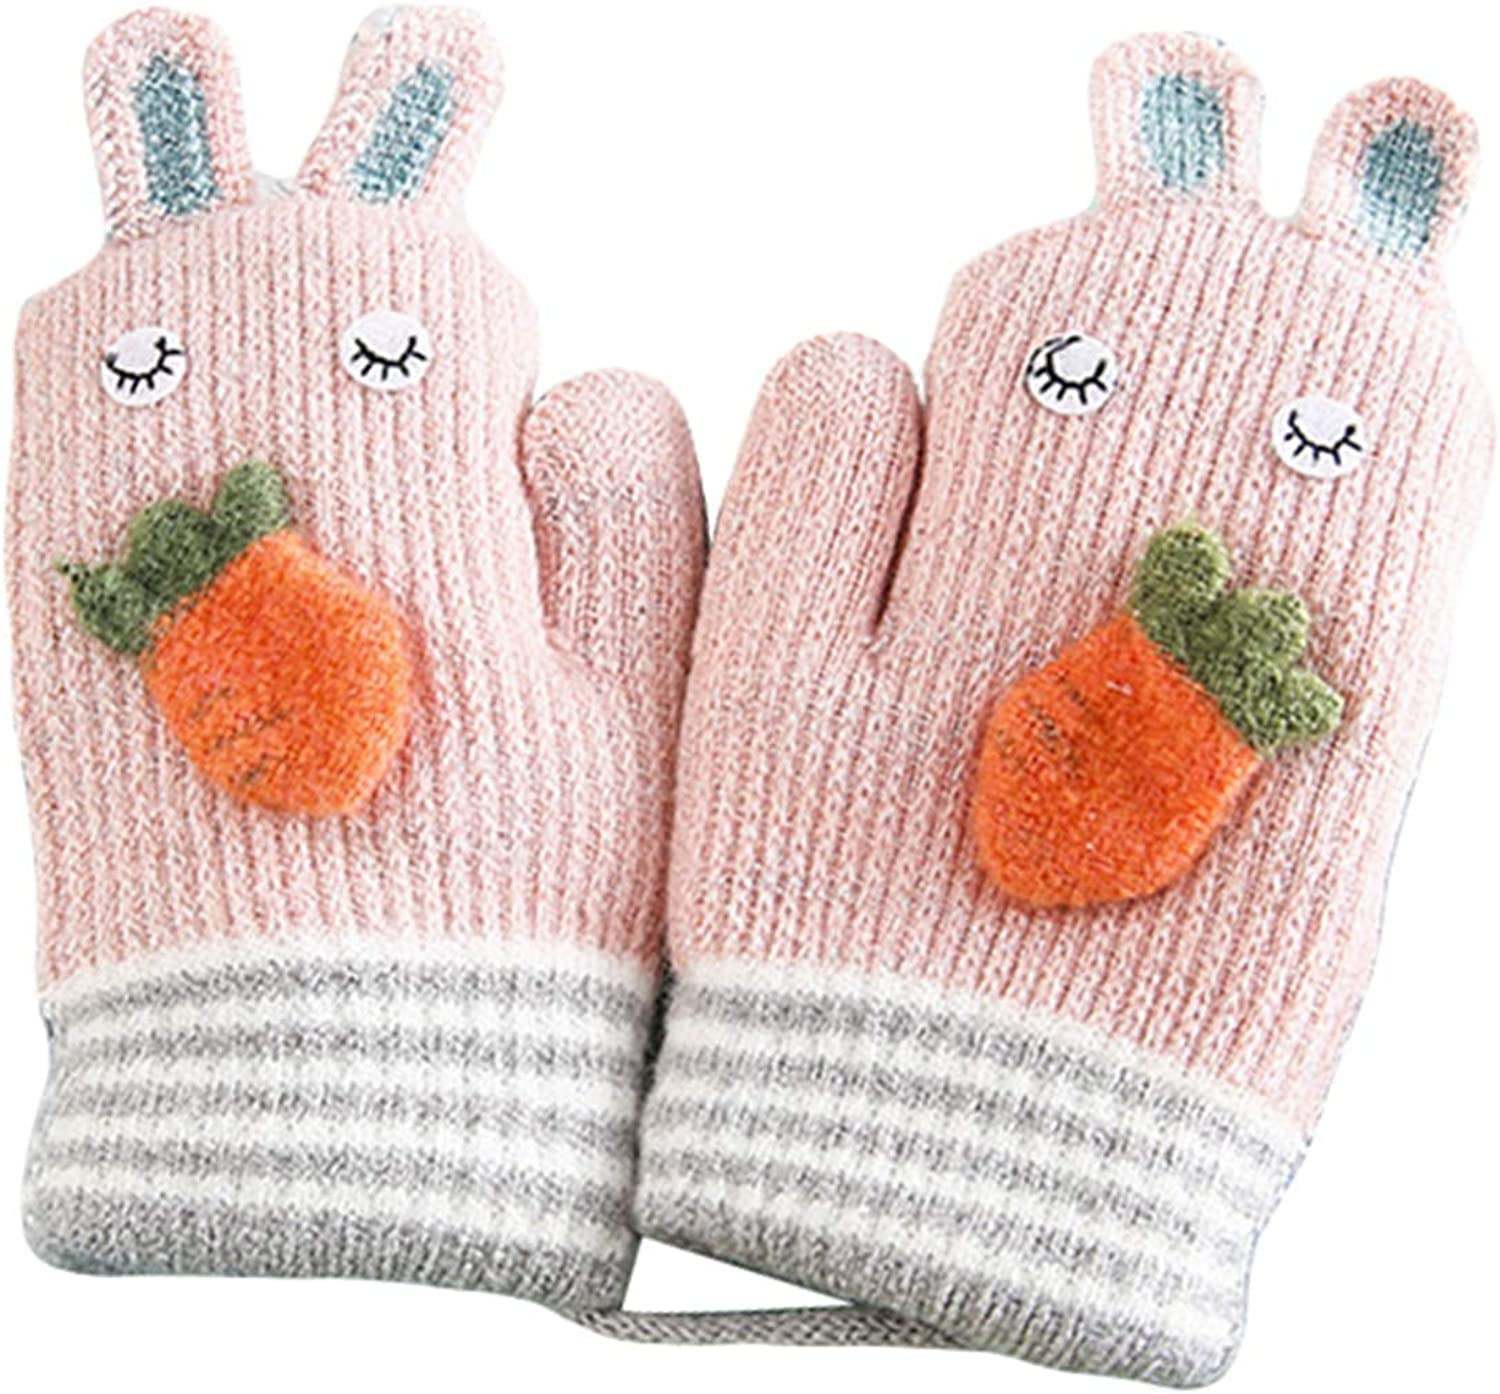 3-5 Years Girls Mittens, Bunny Carrot Lanyard Thermal Kids Cold Weather Gloves for Holiday Season